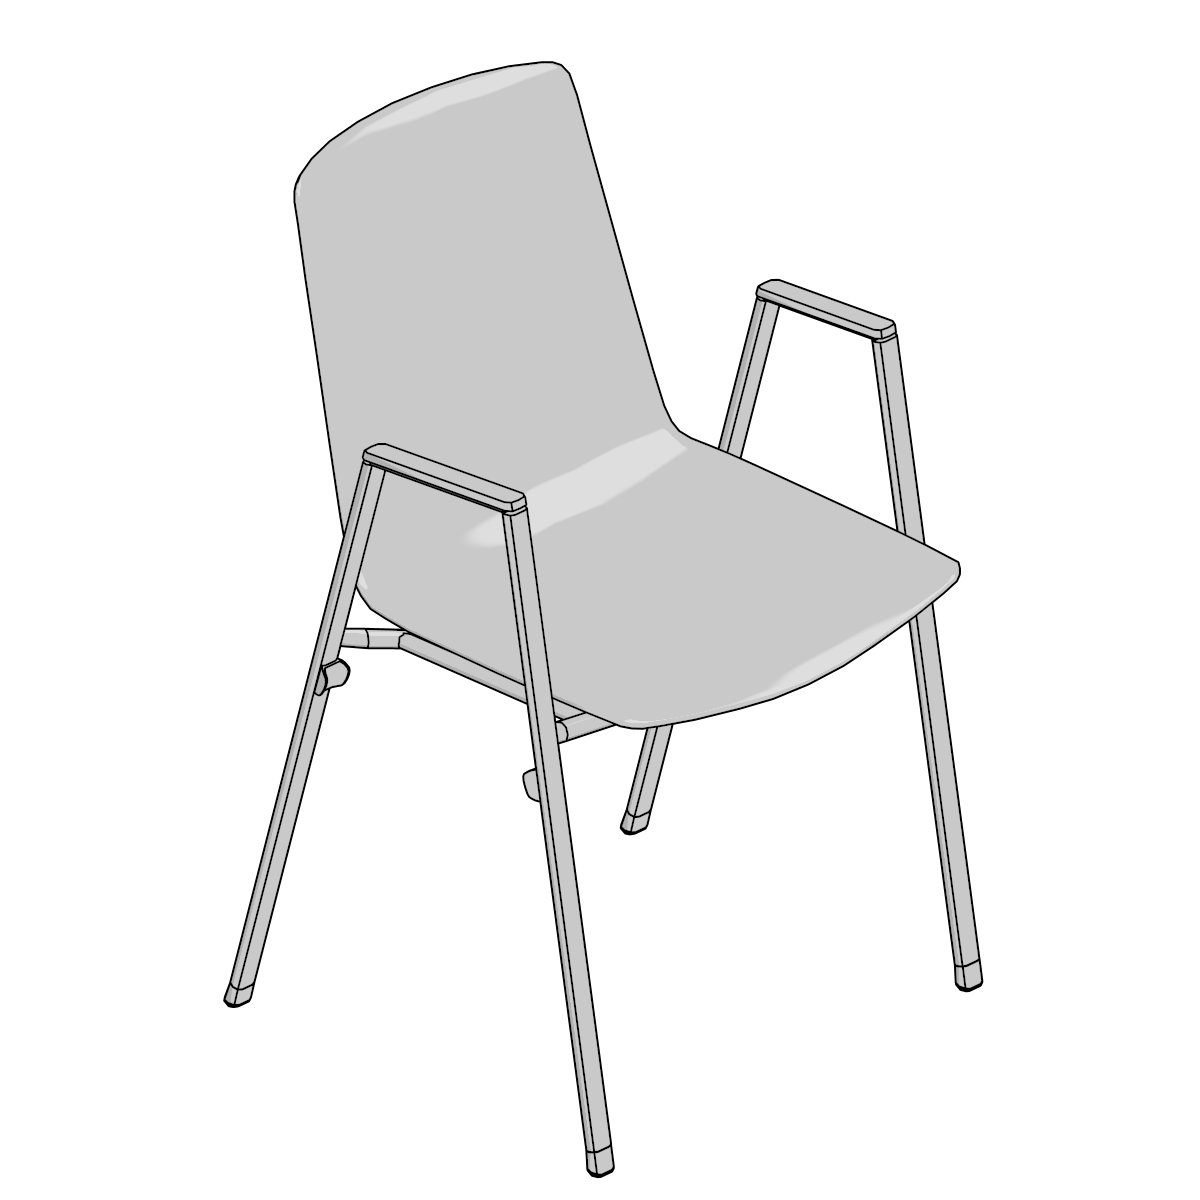 3d models archive steelcase